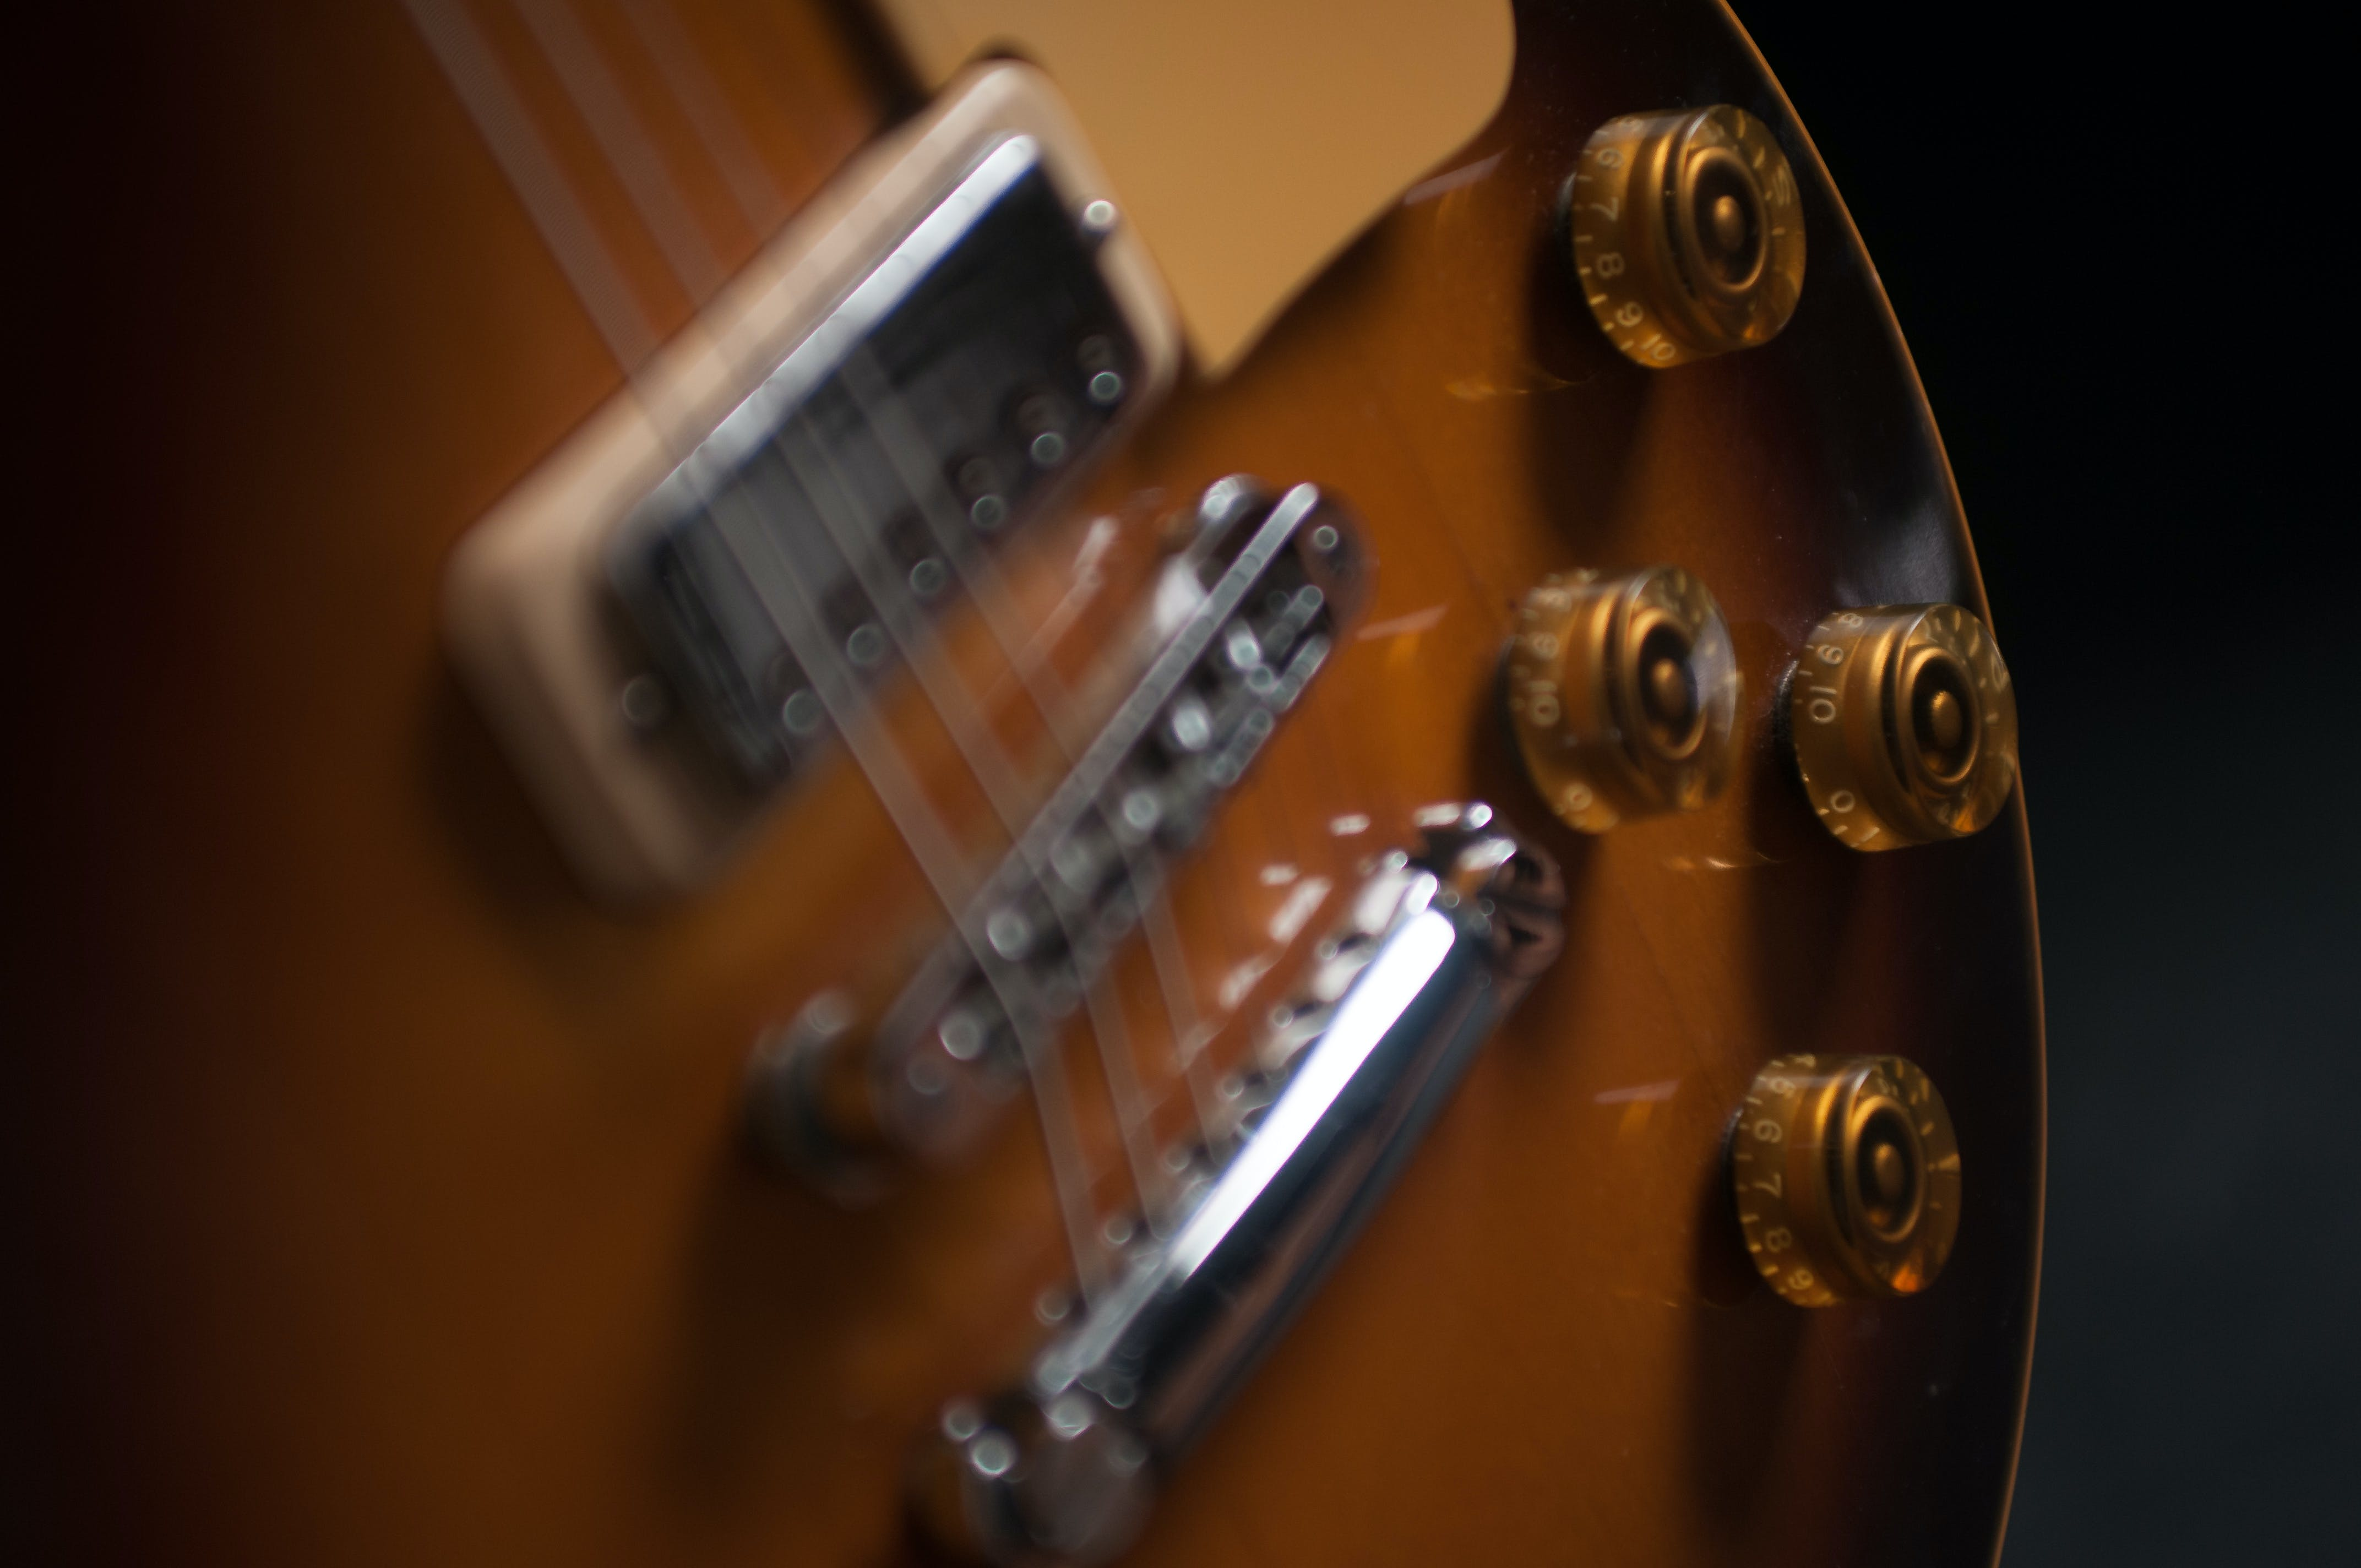 Free stock photo of gutar, Les paul 72 deluxe